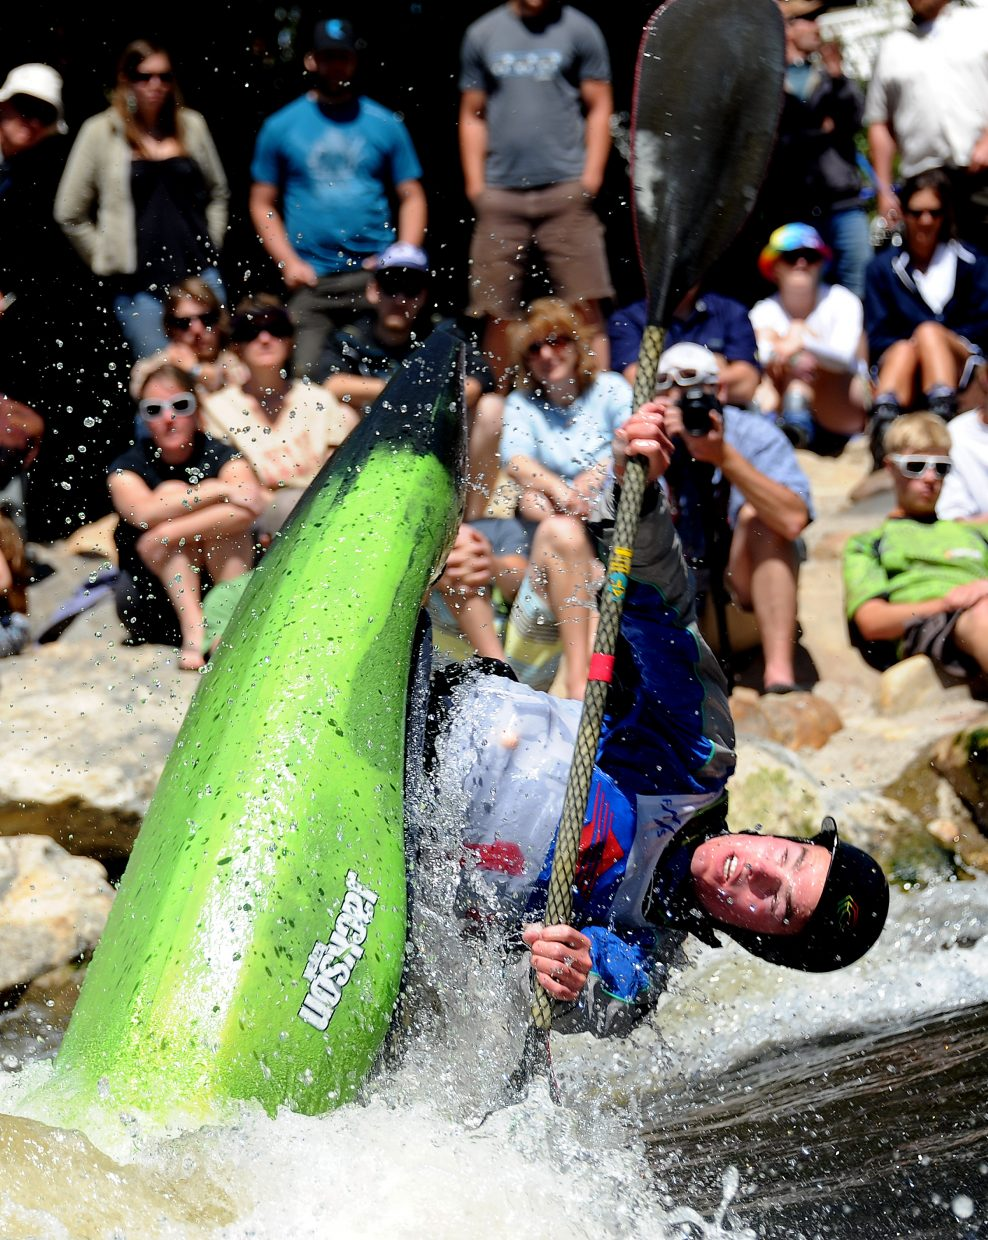 Steamboat's Luke Farny gets air Monday during the Paddling Life Pro Open in Steamboat Springs.